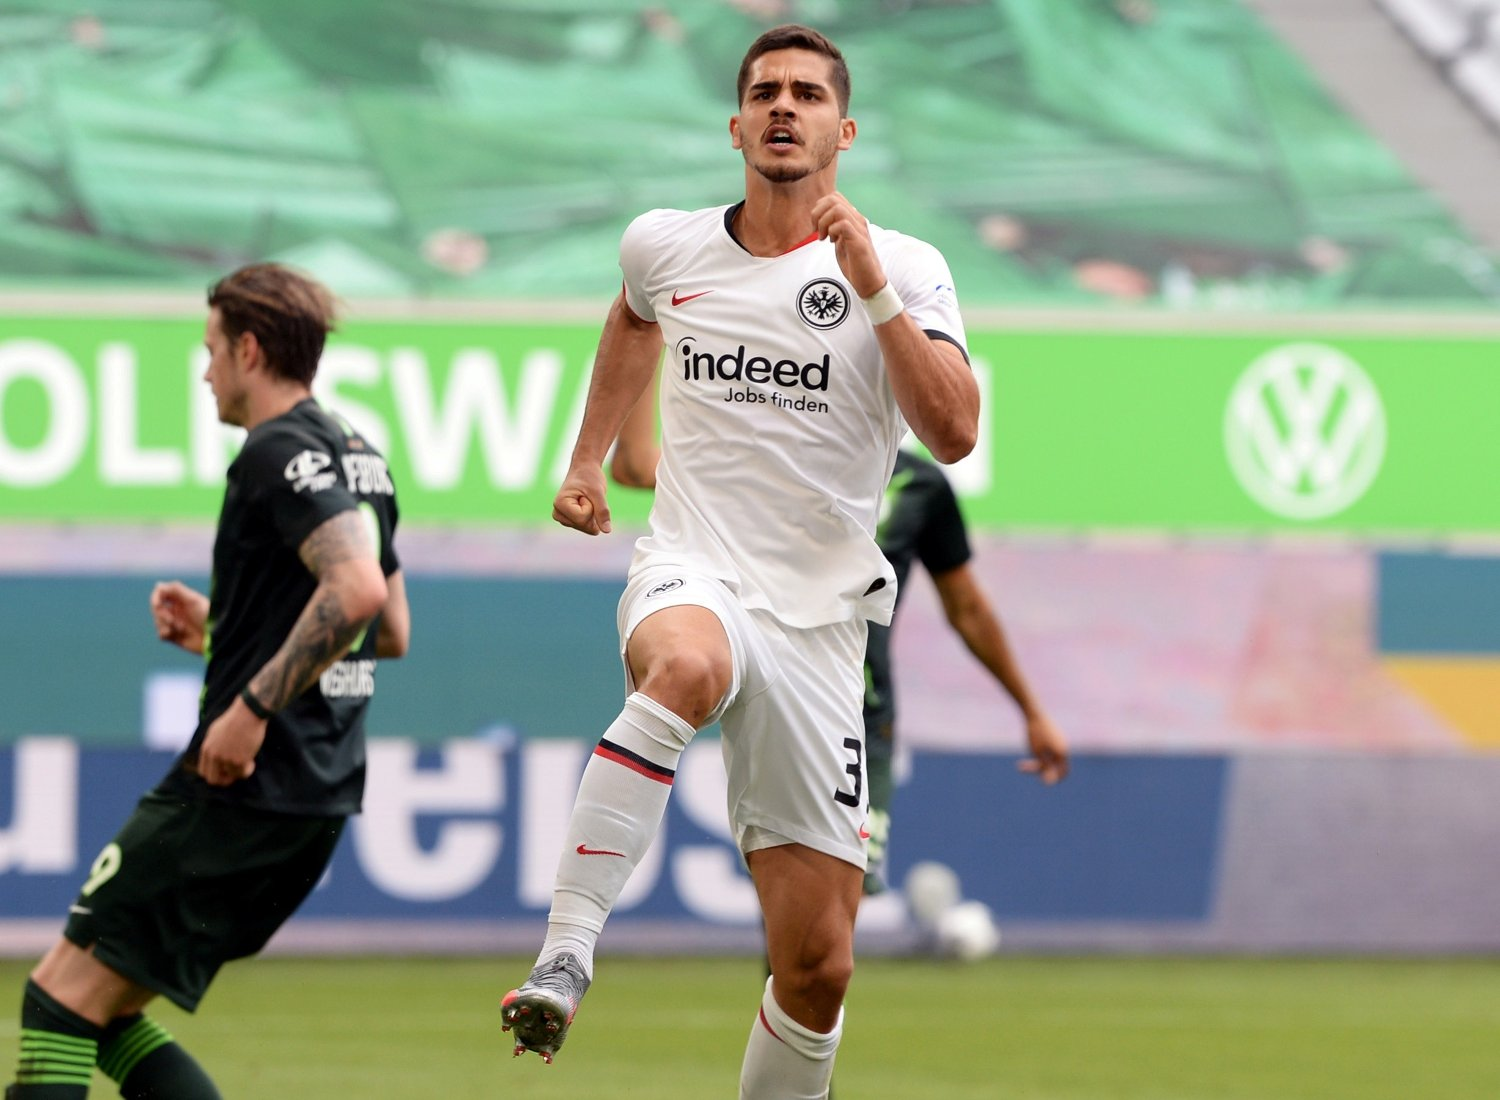 Soccer Football - Bundesliga - VfL Wolfsburg v Eintracht Frankfurt - Volkswagen Arena, Wolfsburg, Germany - May 30, 2020 Eintracht Frankfurt's Andre Silva celebrates scoring their first goal, as play resumes behind closed doors following the outbreak of the coronavirus disease Swen Pfortner/Pool via REUTERS DFL regulations prohibit any use of photographs as image sequences and/or quasi-video